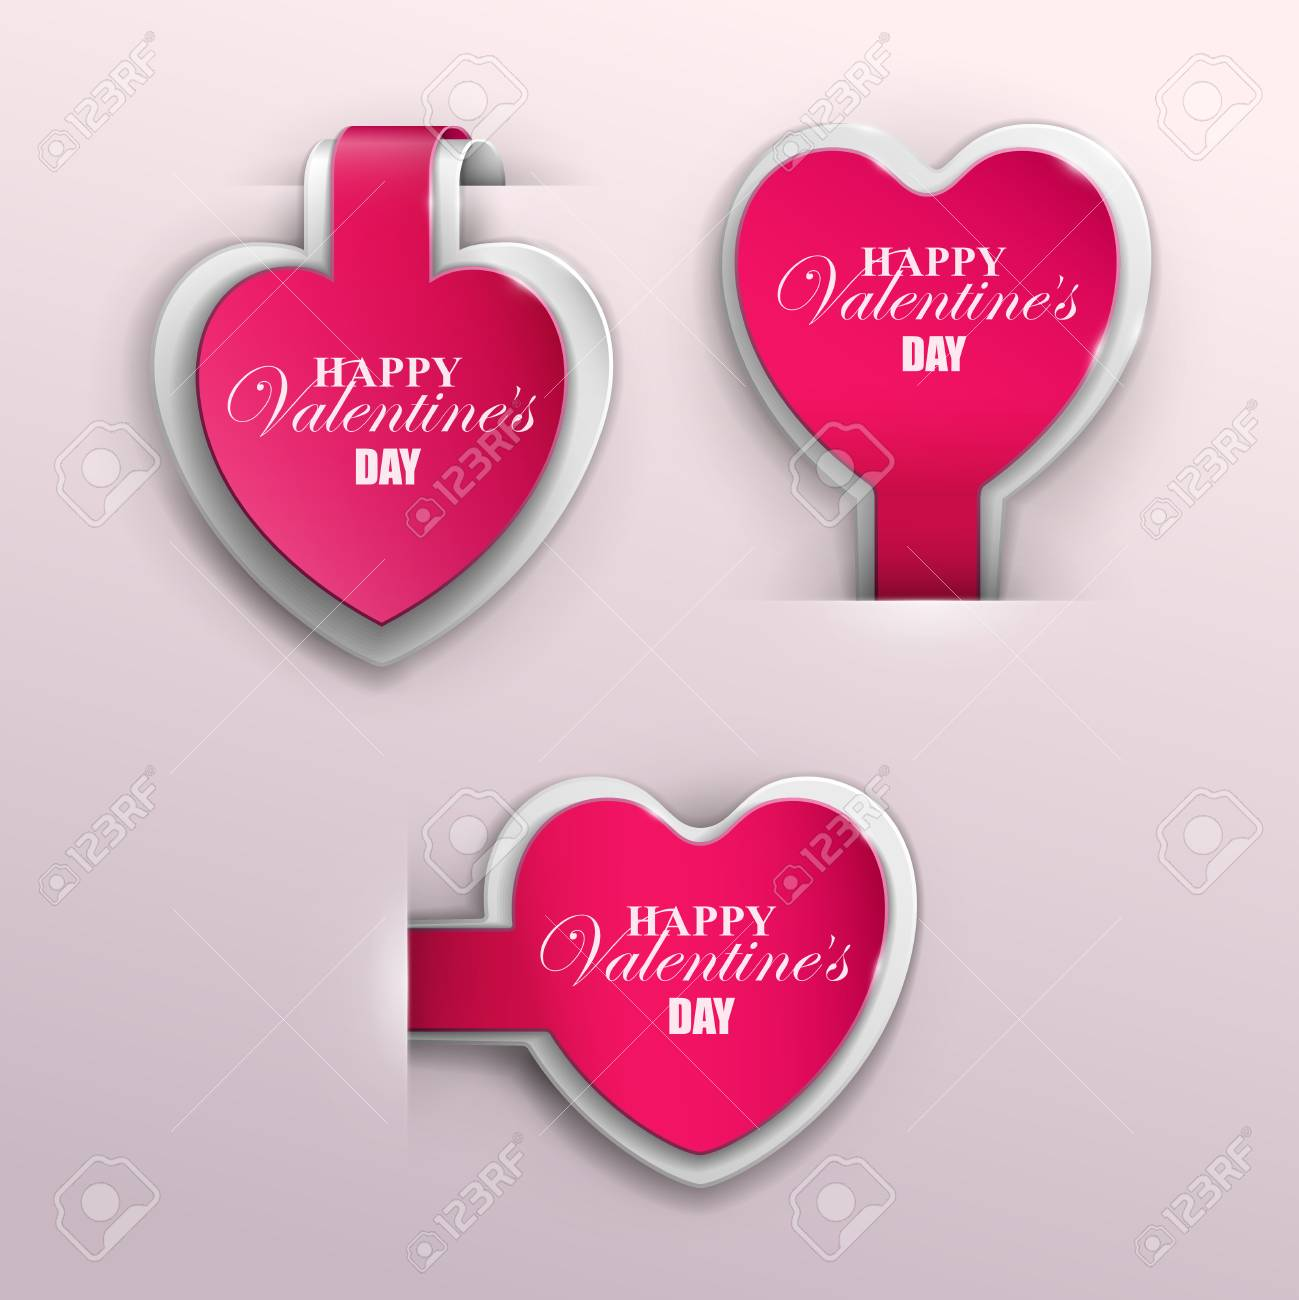 Valentines Day Banners Set Vector Illustration Royalty Free